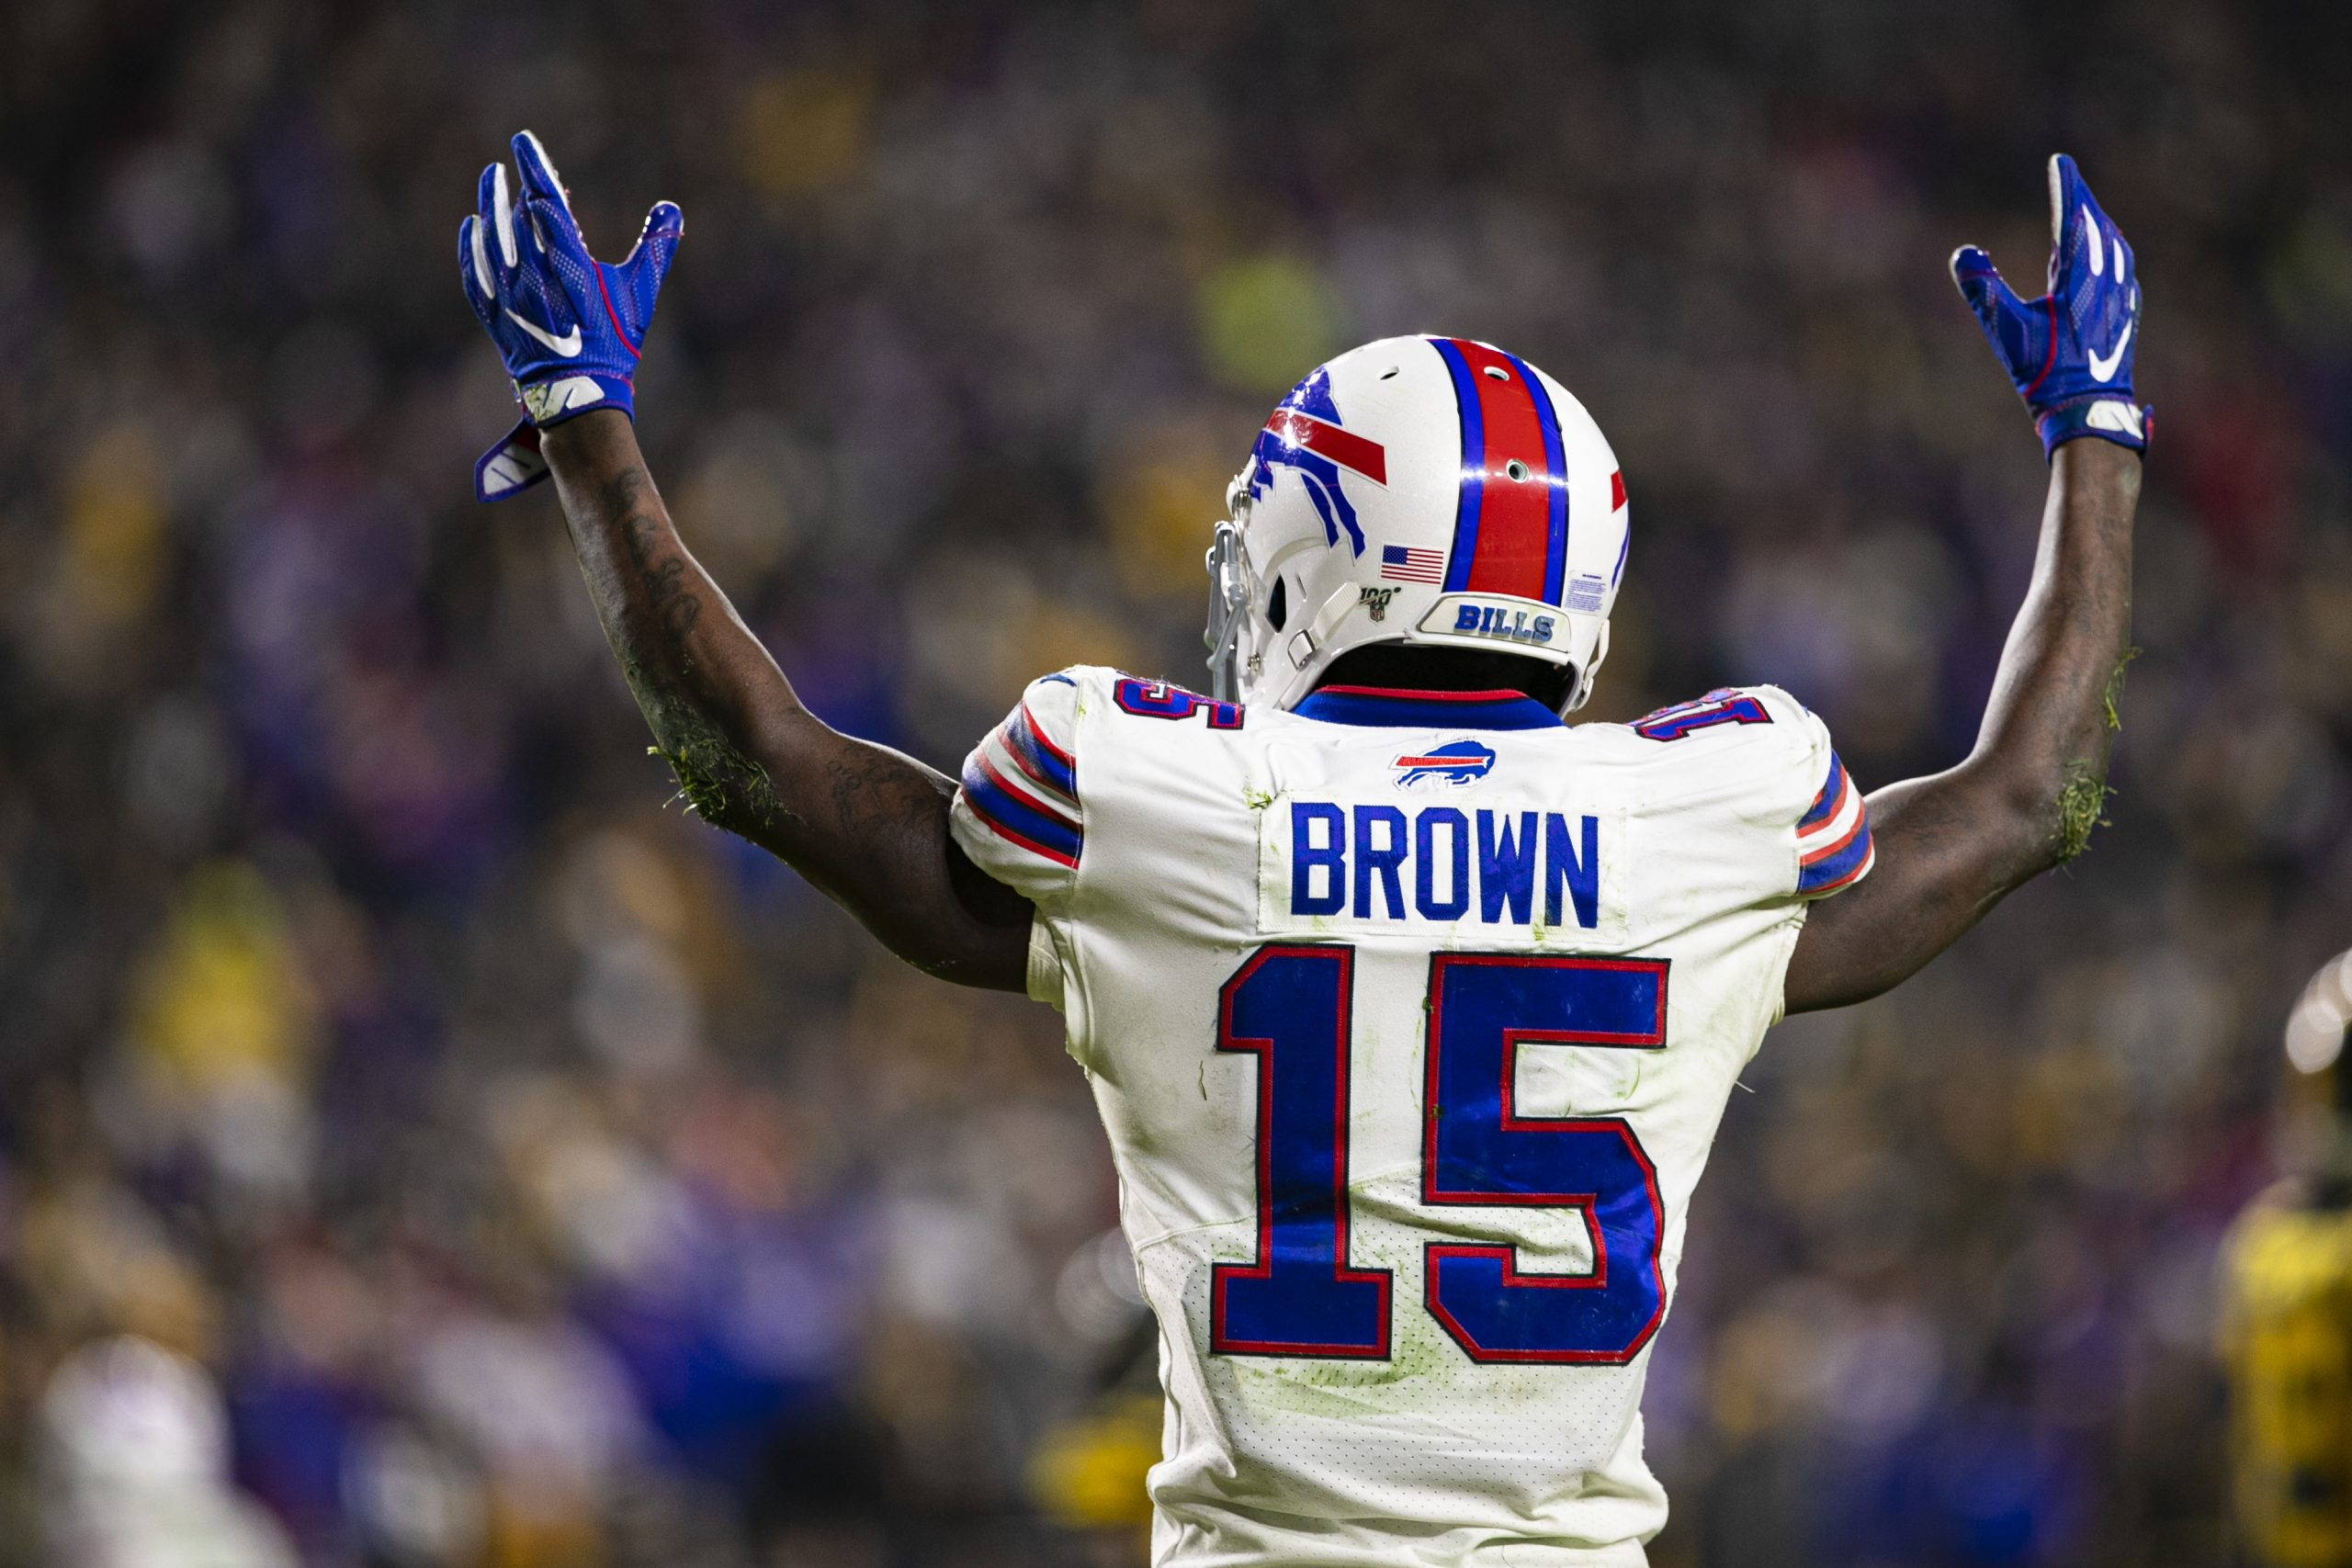 PITTSBURGH, PA - DECEMBER 15: Buffalo Bills wide receiver John Brown (15) celebrates during the NFL, American Football H